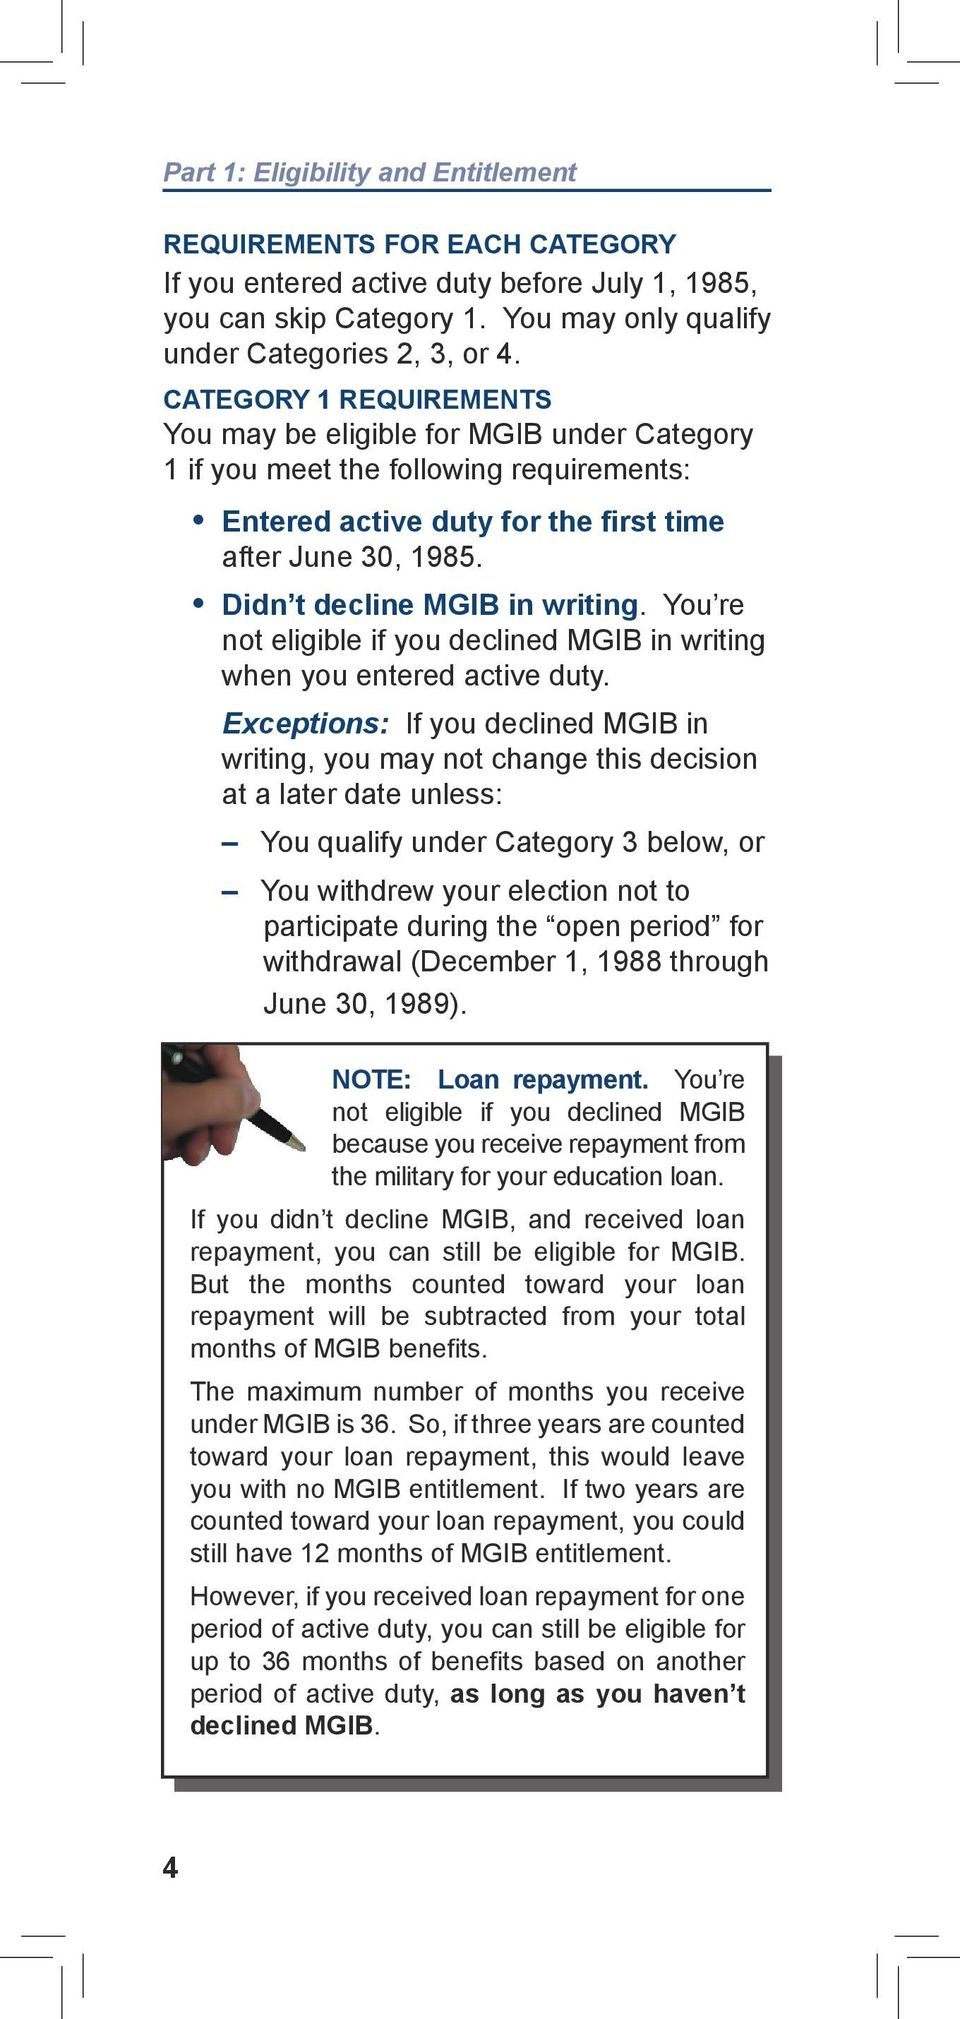 Didn t decline MGIB in writing. You re not eligible if you declined MGIB in writing when you entered active duty.